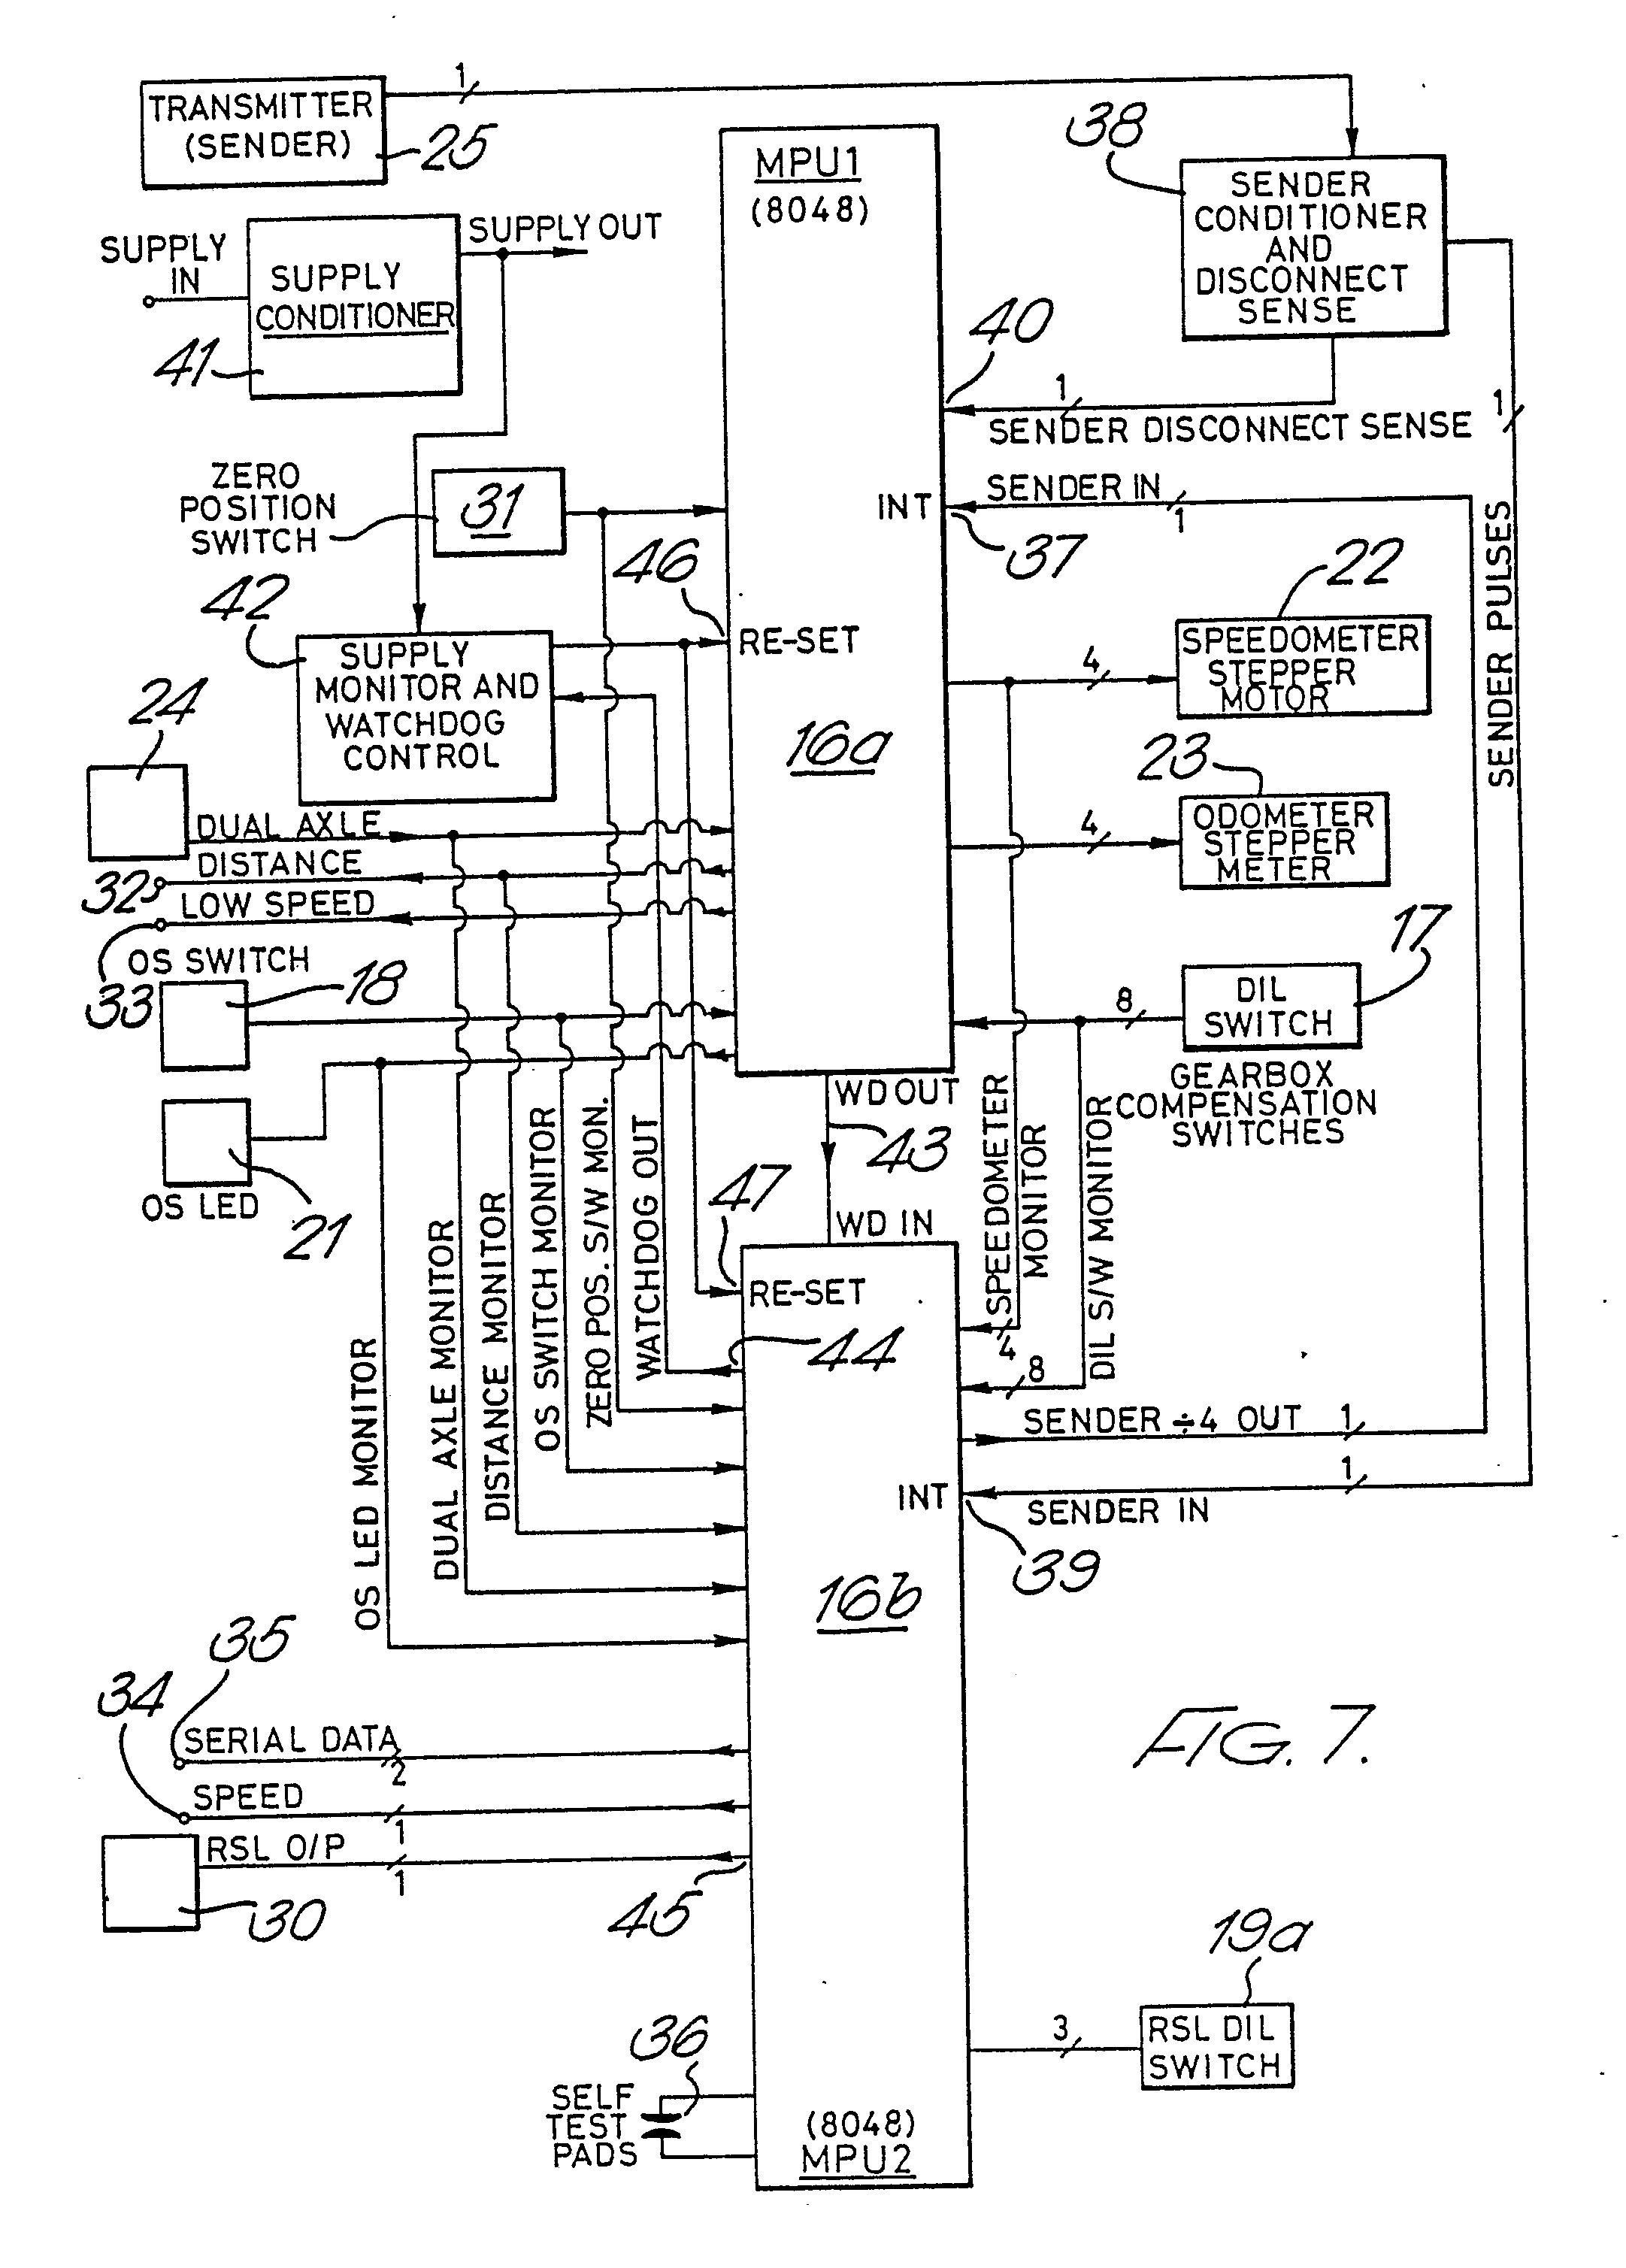 imgf0005?resized665%2C928 sangamo time clock wiring diagram sangamo heating control Simple Wiring Schematics at bayanpartner.co